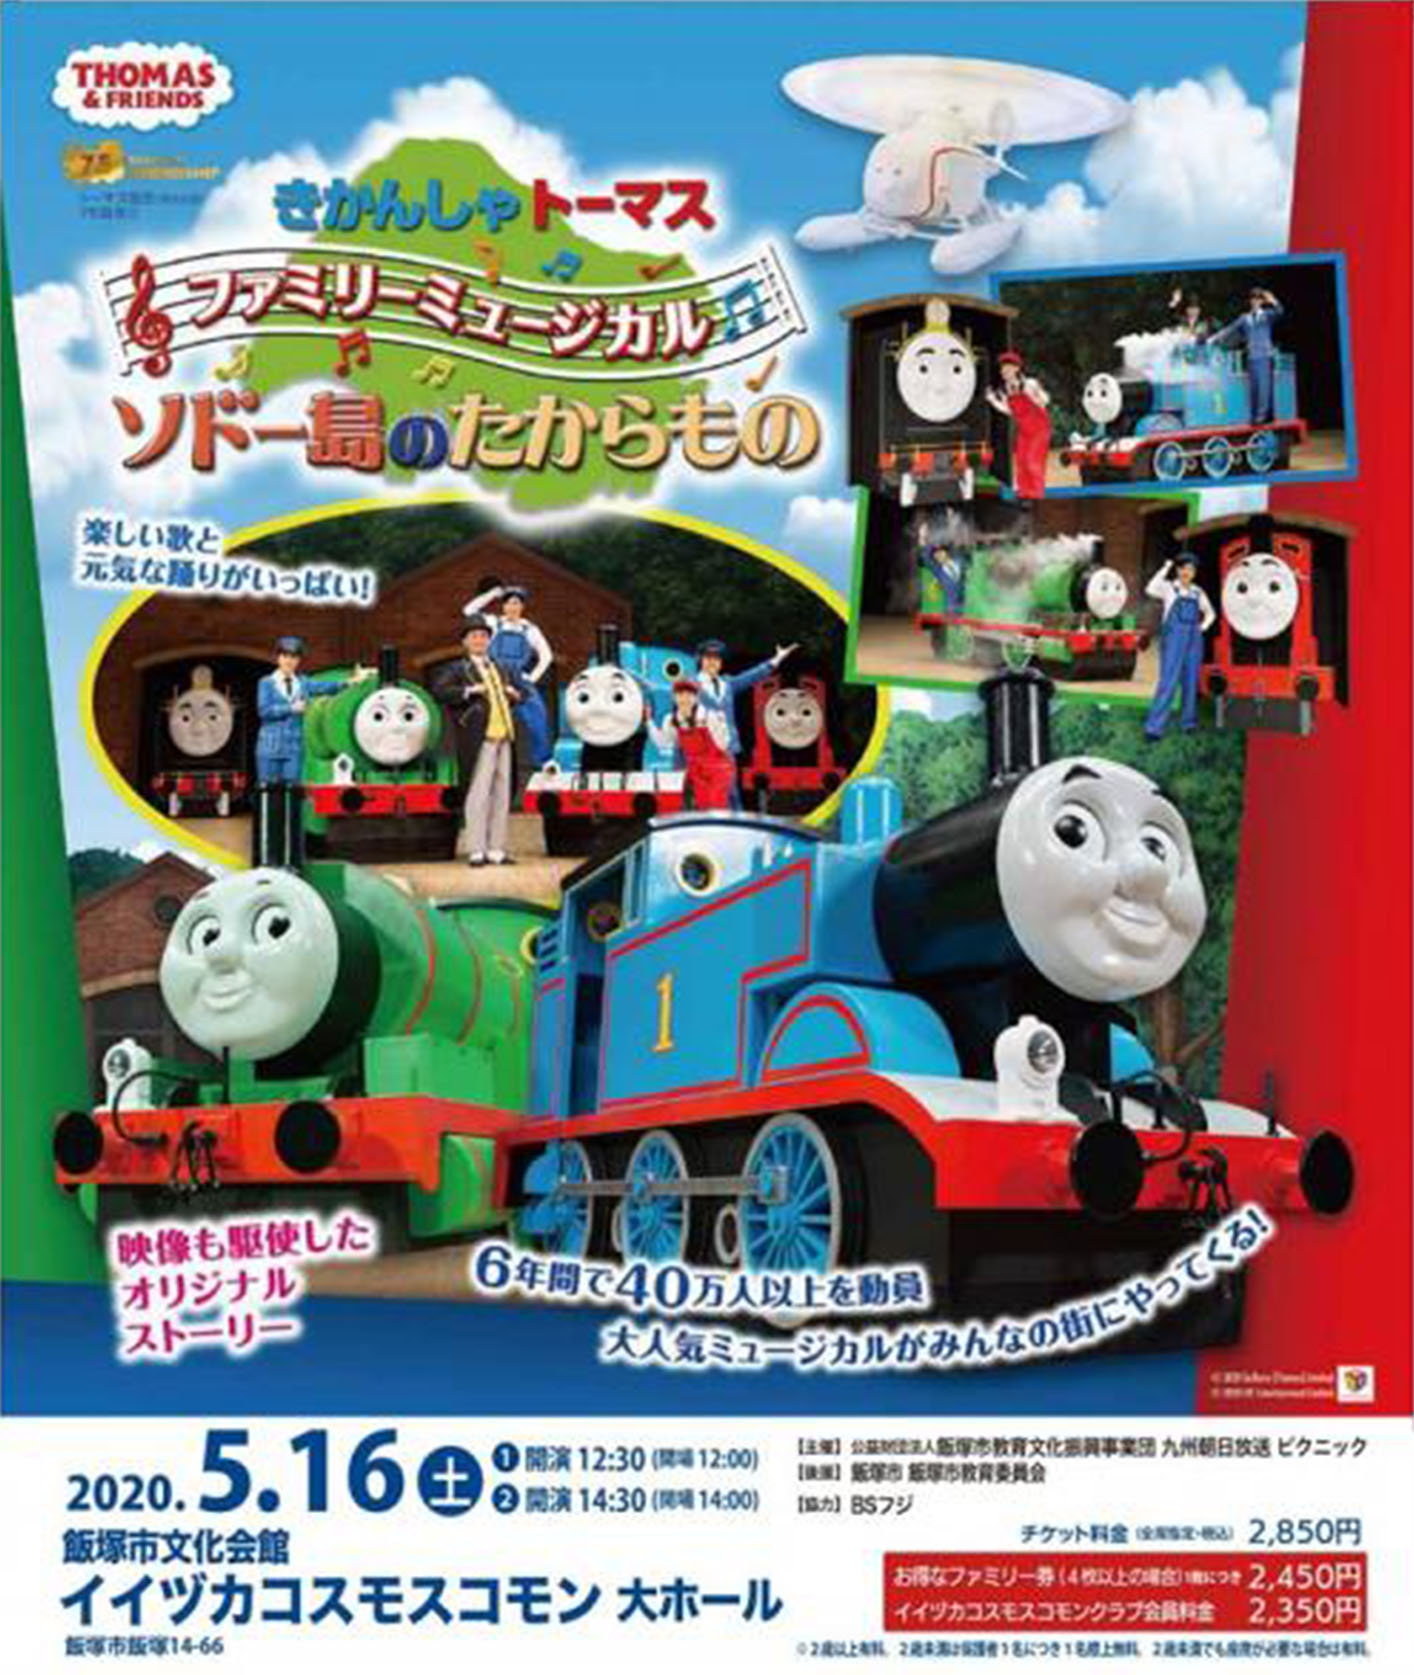 200516_thomas_musical_iizuka